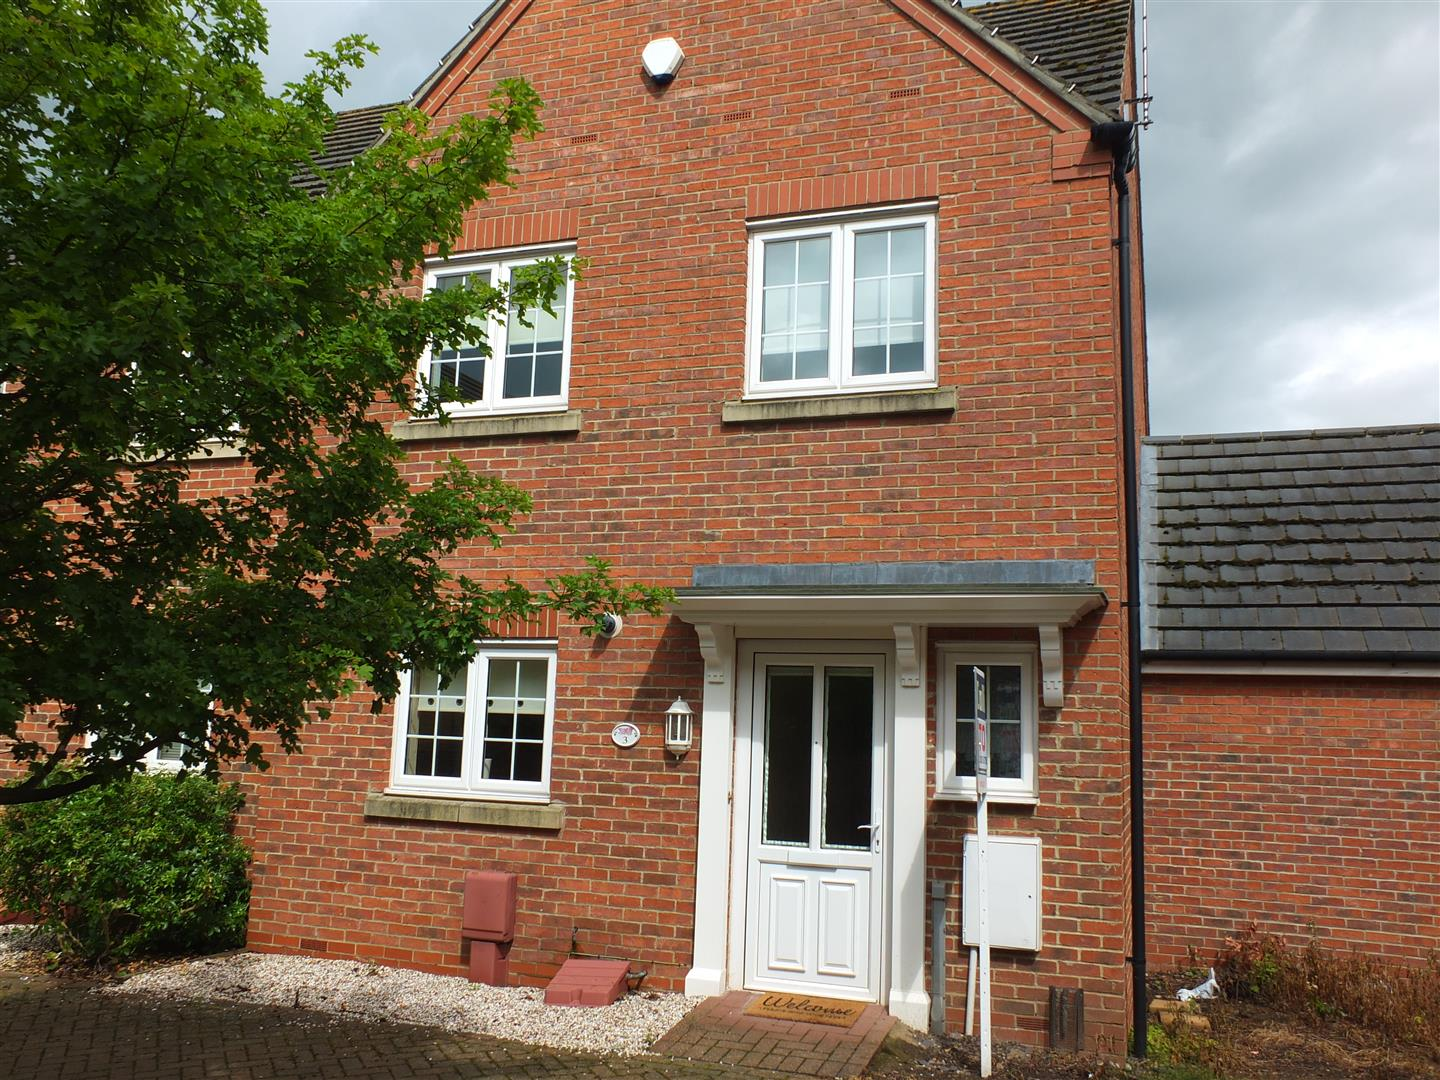 3 bed house to rent in Sutton Bridge Spalding, PE12 9PY - Property Image 1